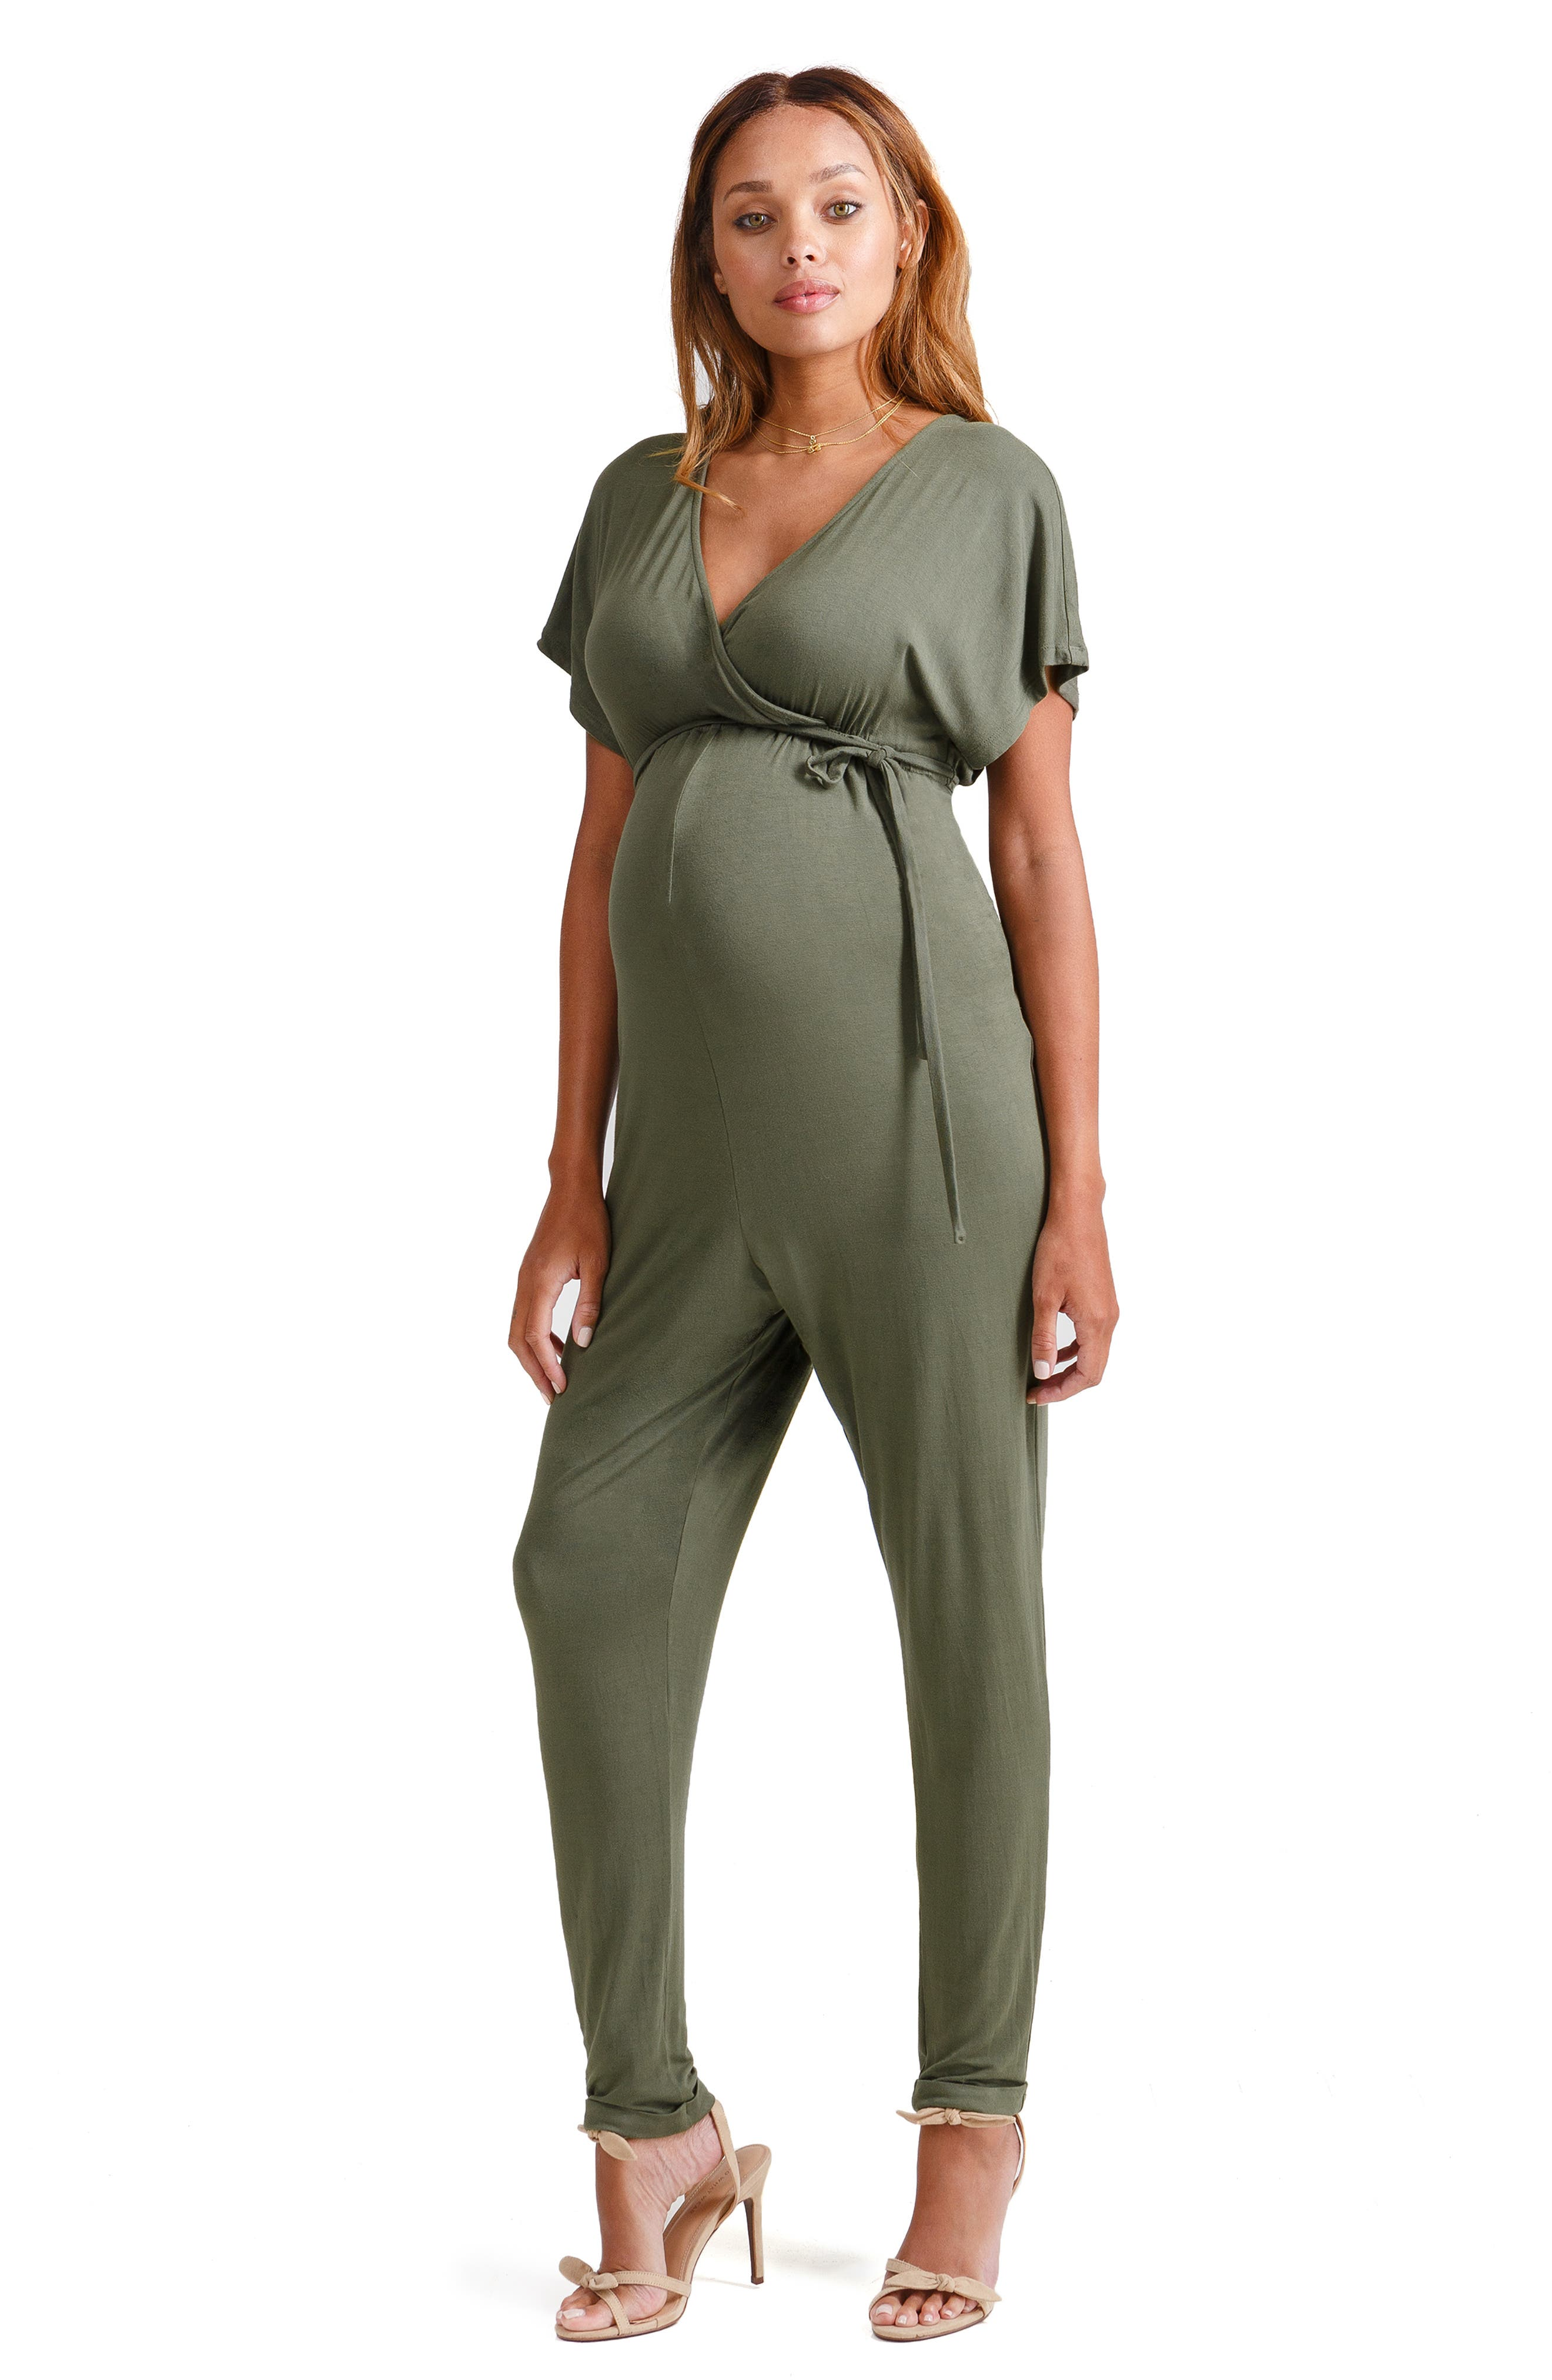 Crossover Maternity Jumpsuit,                             Alternate thumbnail 6, color,                             OLIVE